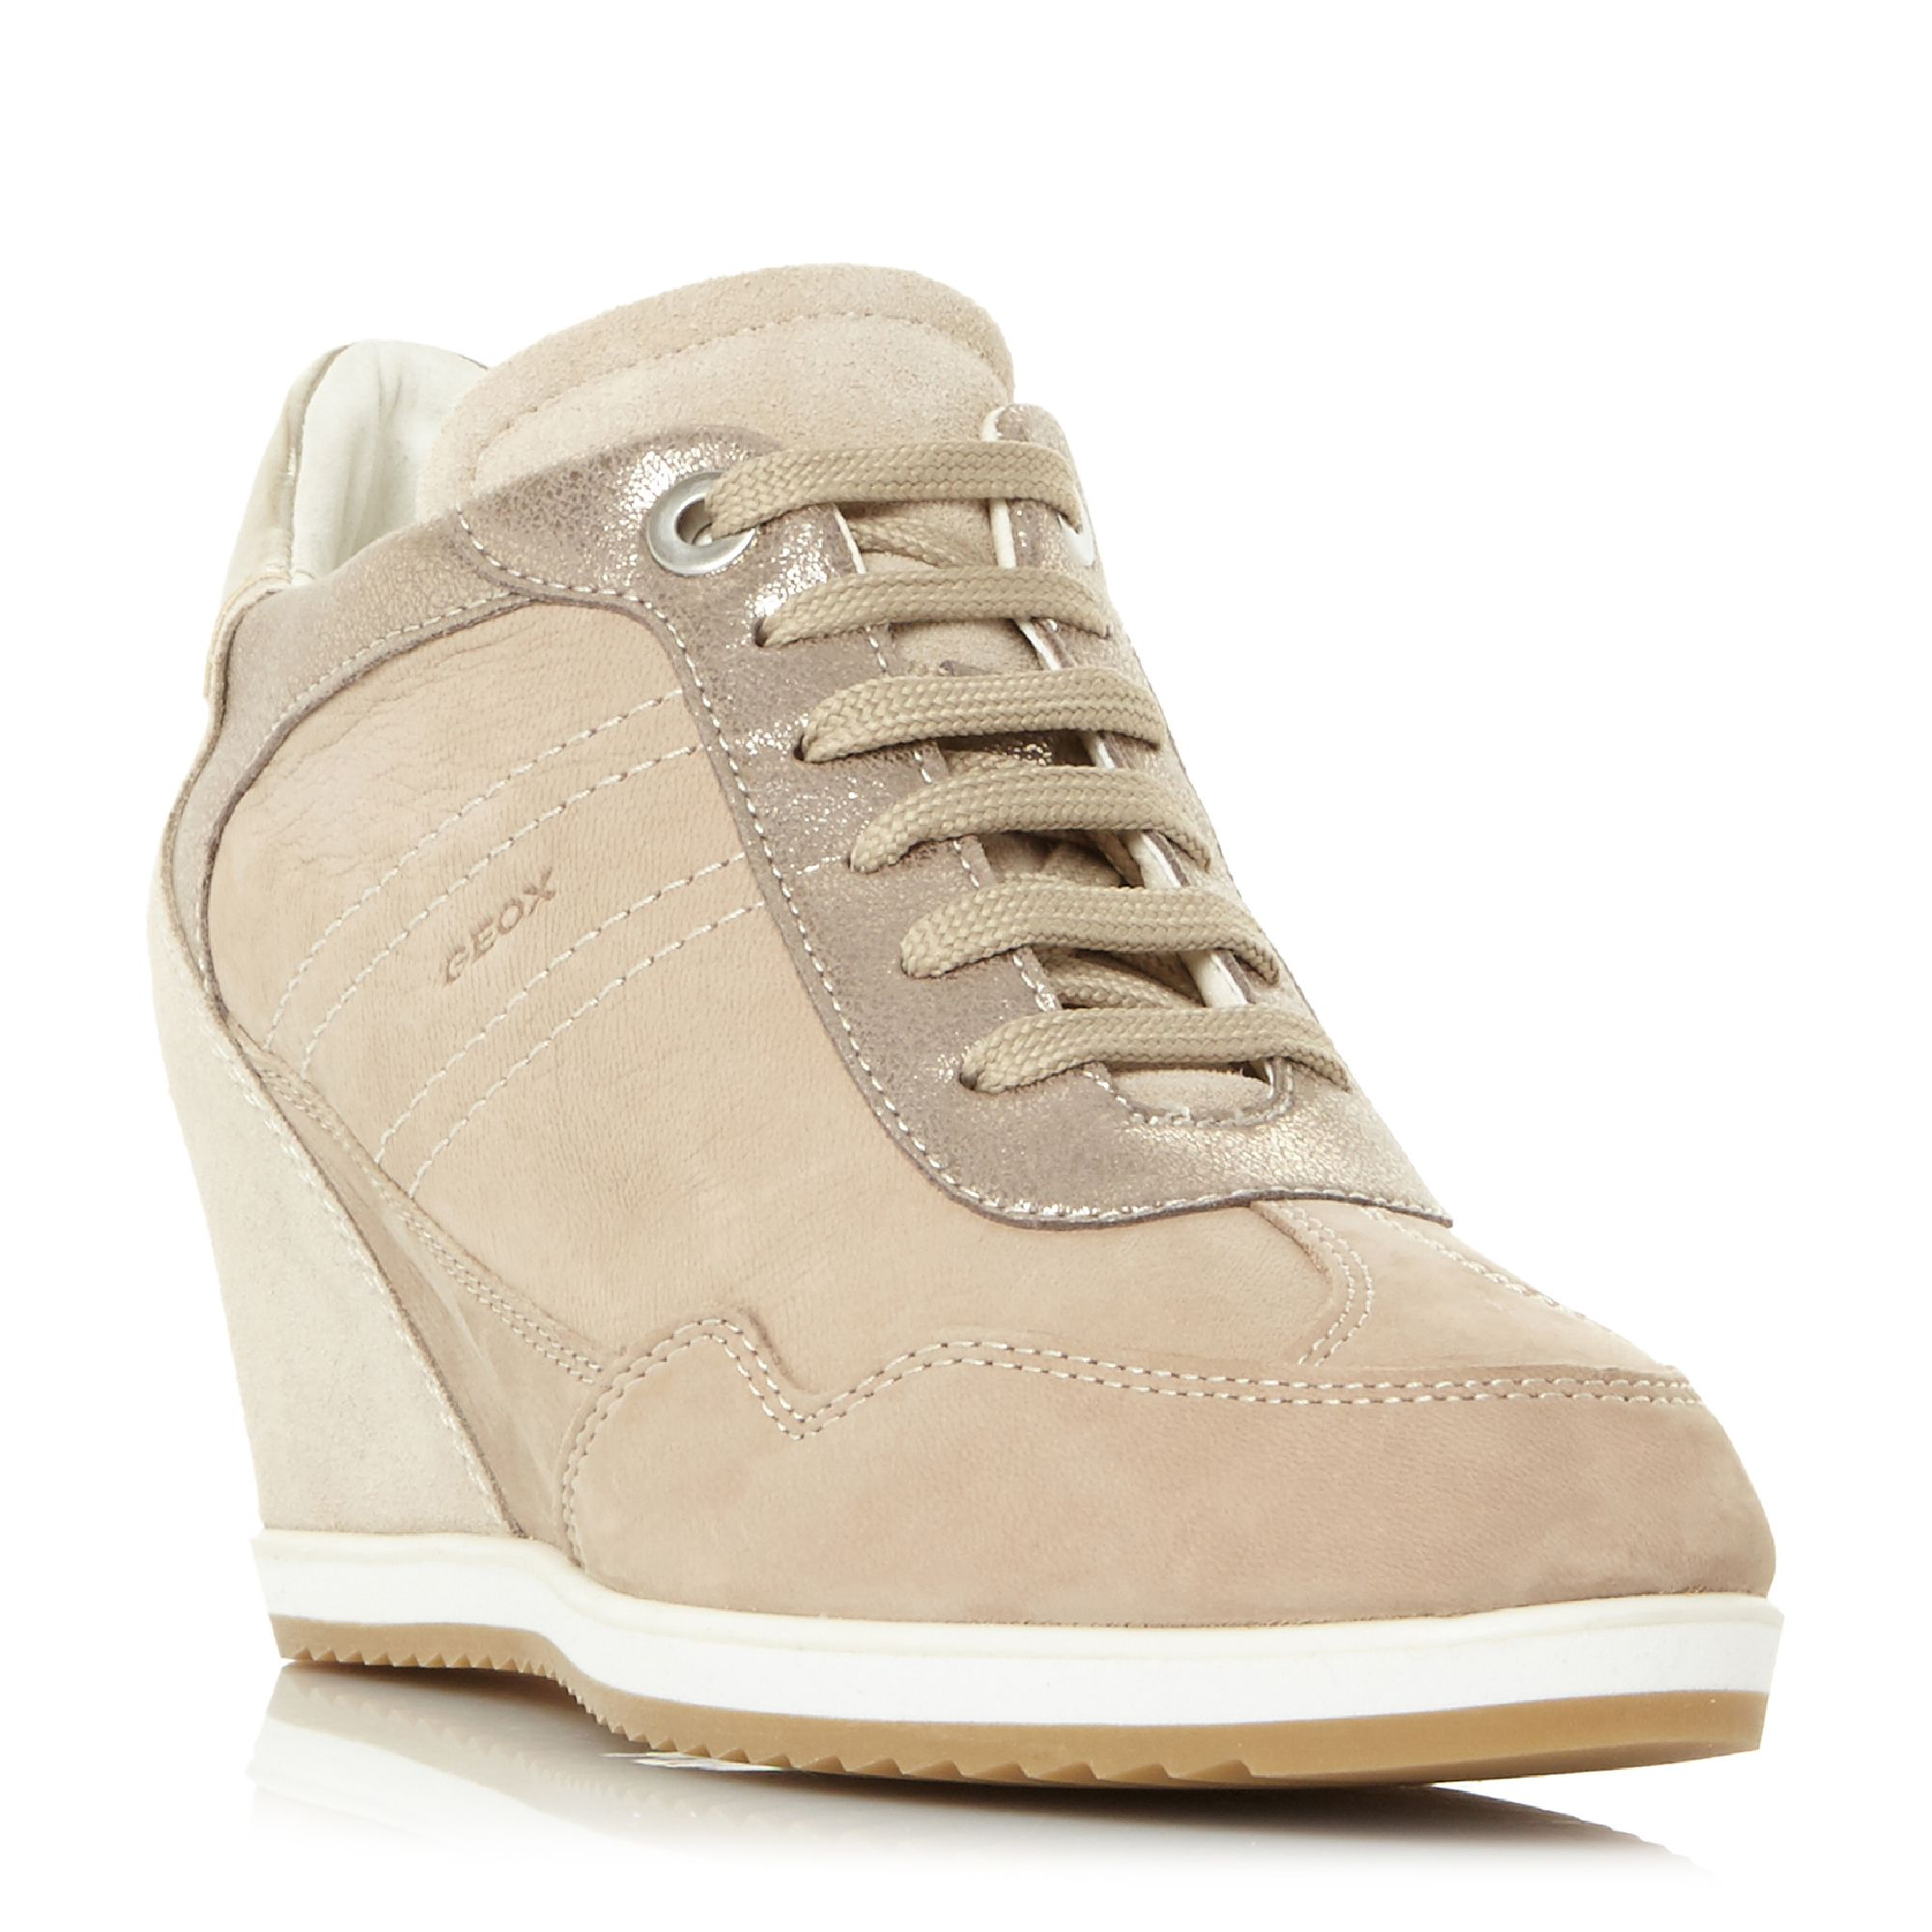 Geox D Illusion B Lace Up Wedge Trainers, Sand